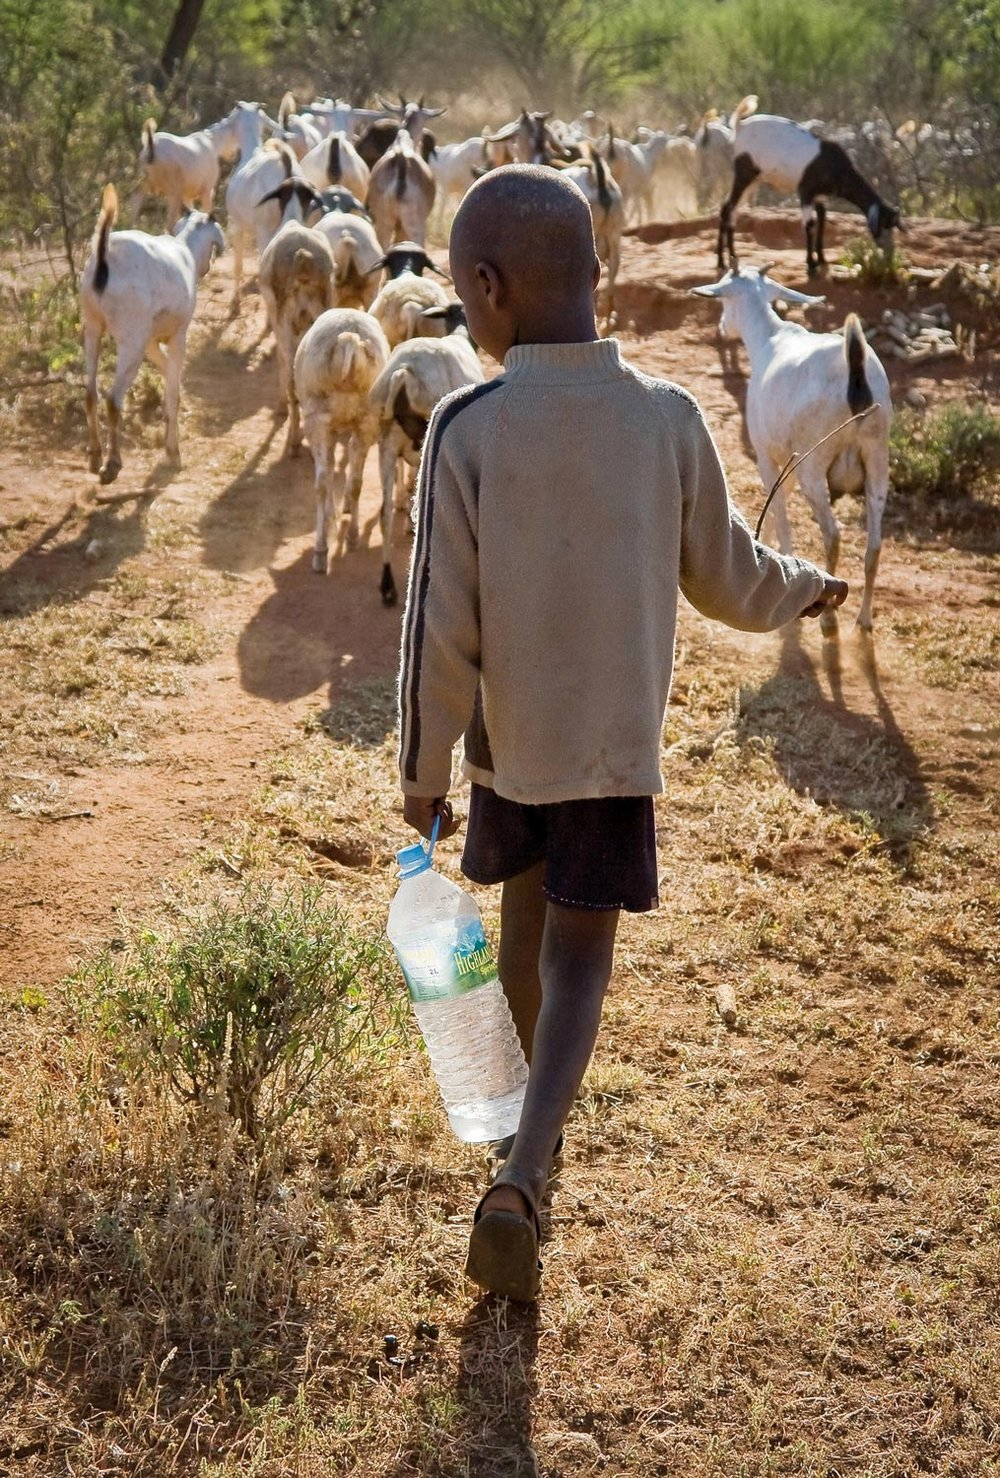 OPEN THIS PUBLICATION  THE SCHOOL OF LIFE: EDUCATION IN A PASTORALIST COMMUNITY